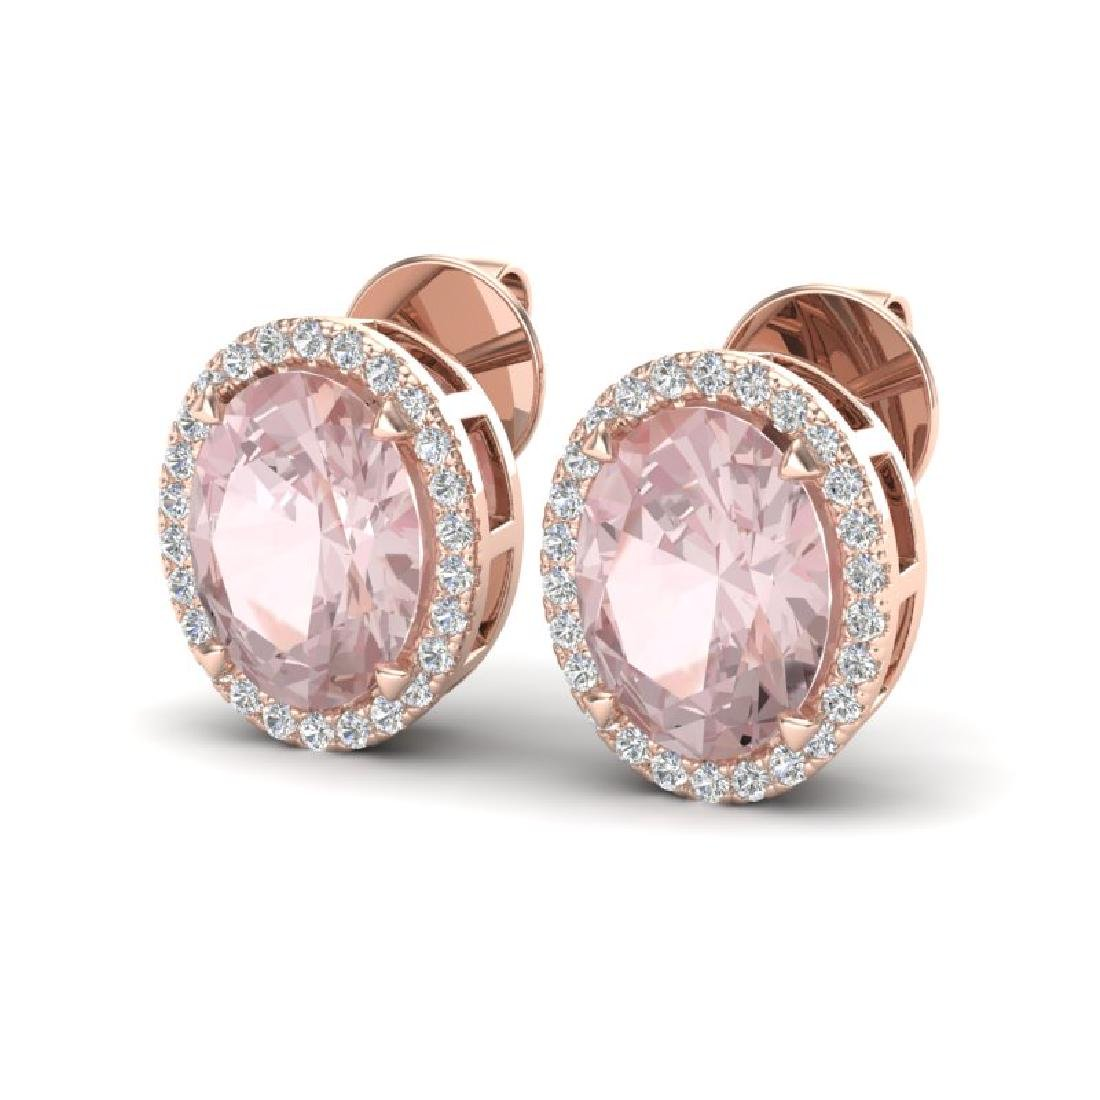 5.50 CTW Morganite & Micro VS/SI Diamond Halo Earrings